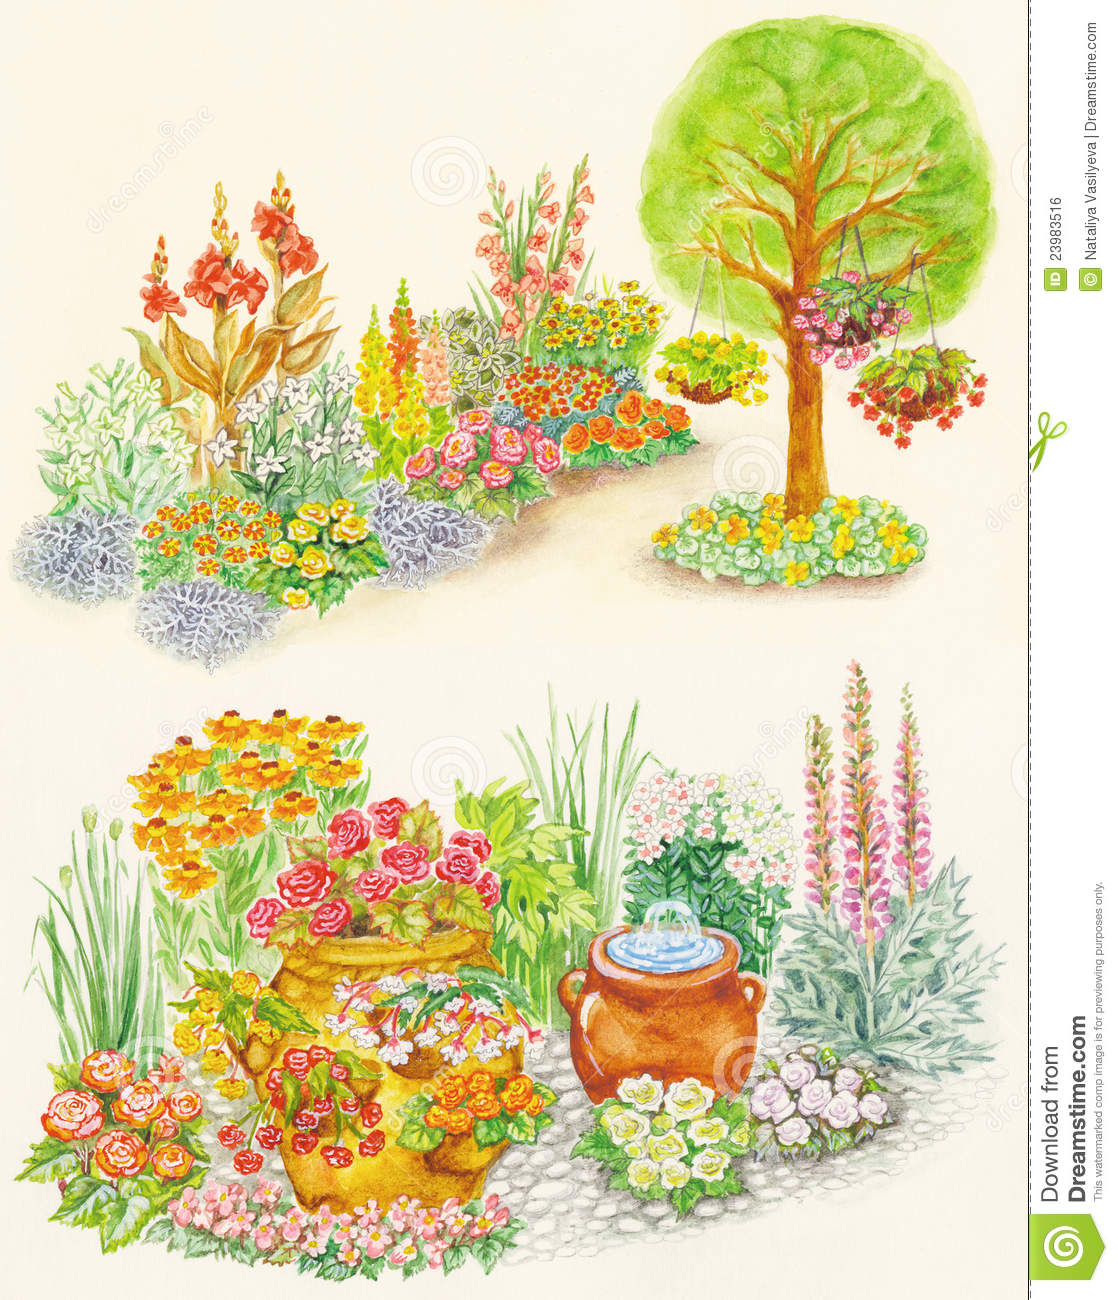 Garden Design Of Flower Beds With Ornamental Flowe Royalty Free.